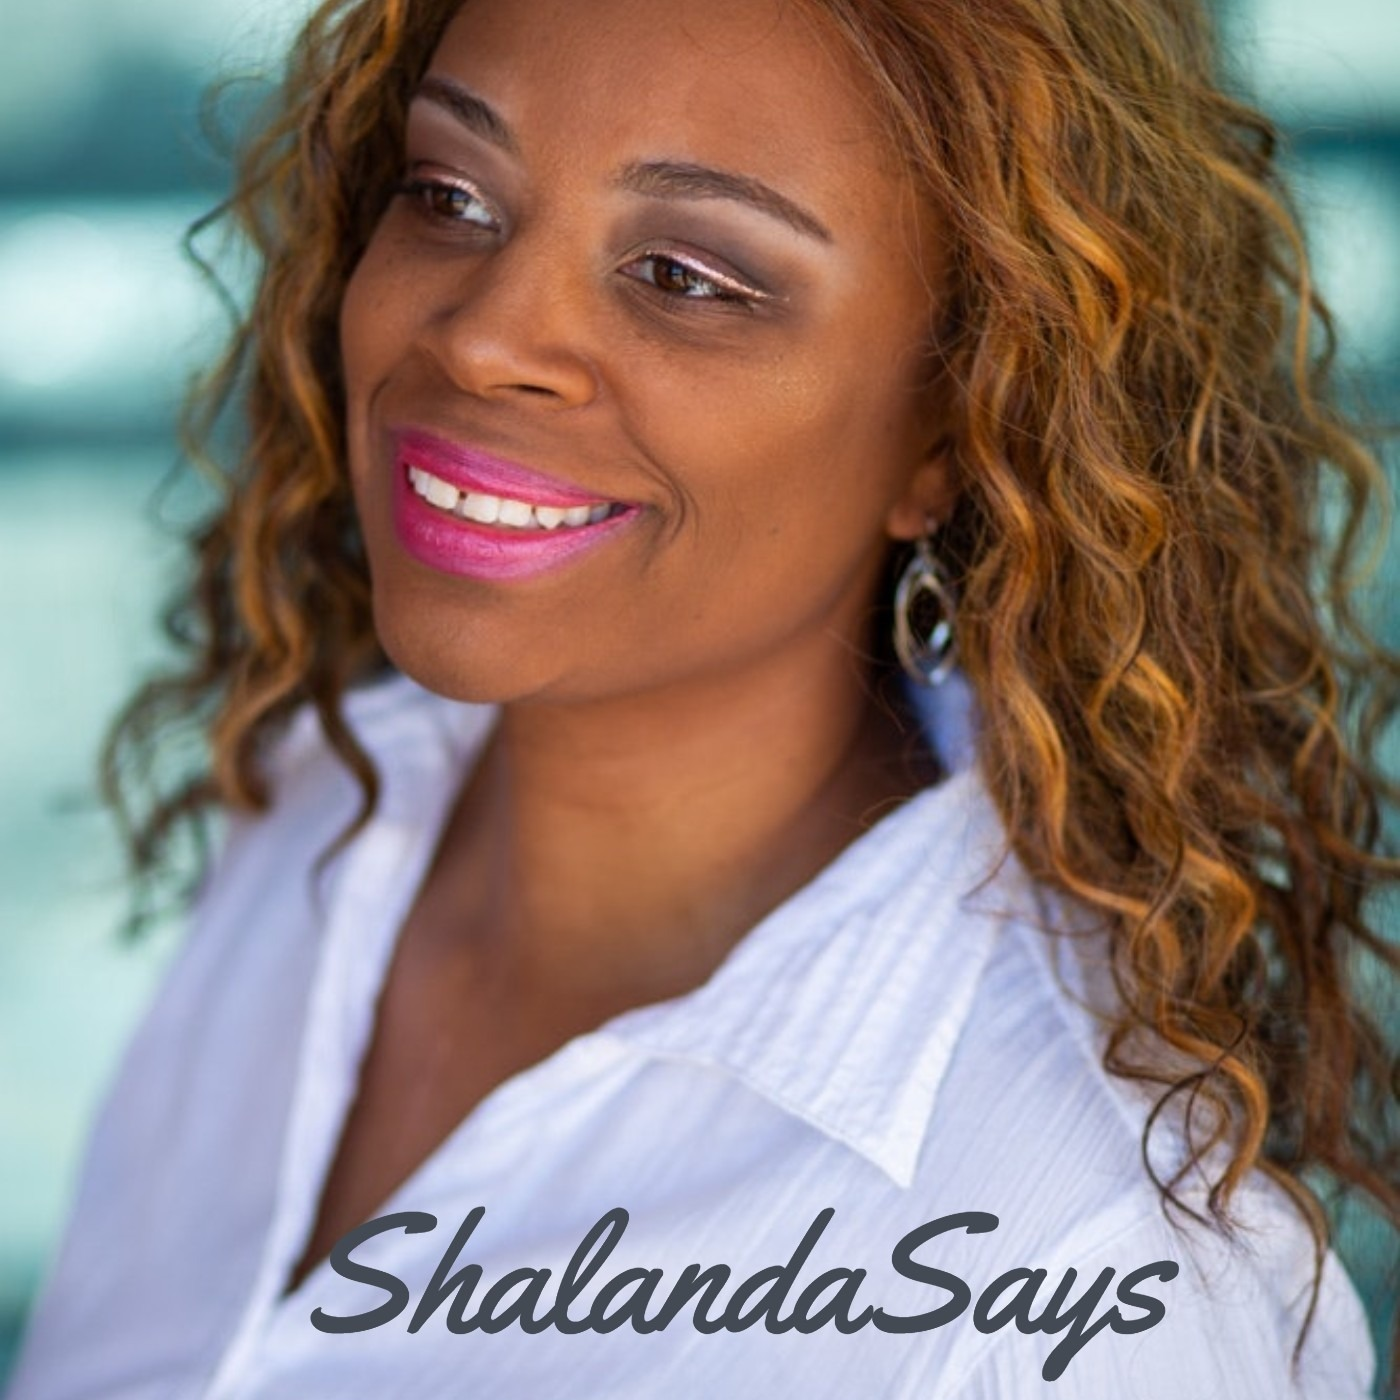 ShalandaSays Meet Our Guest of the Month Series